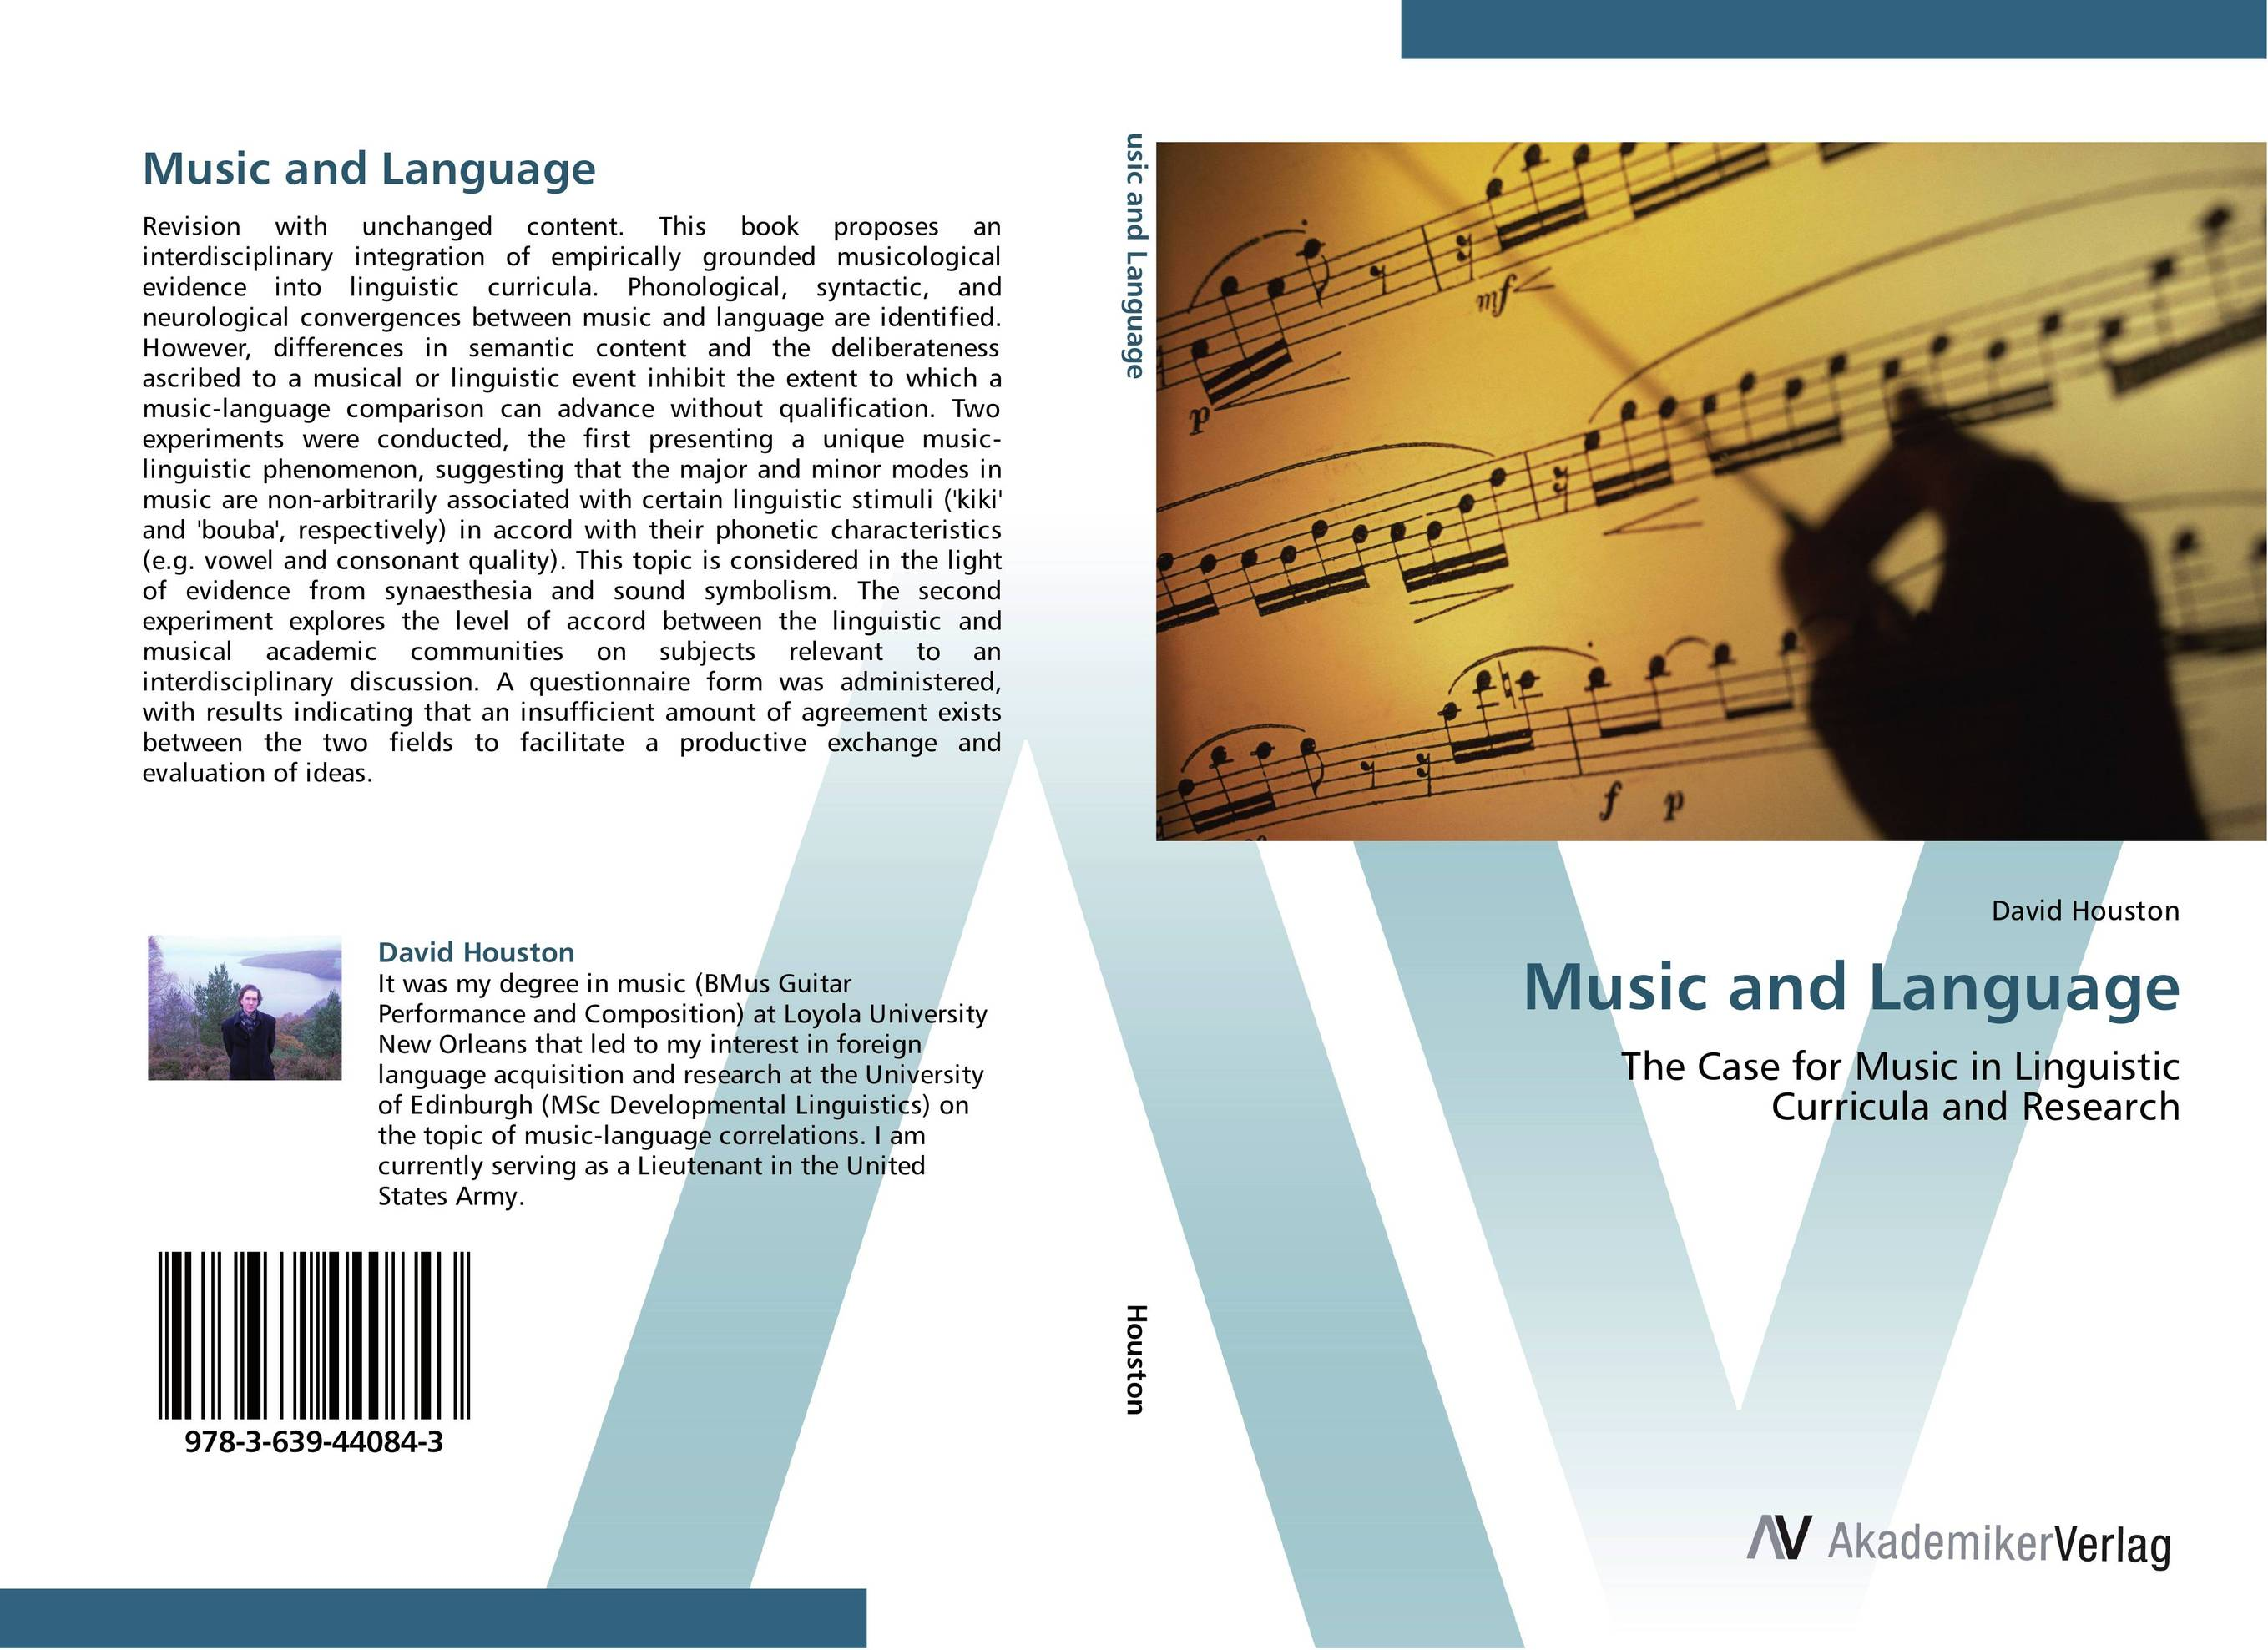 Music and Language three academic databases with arabic language content